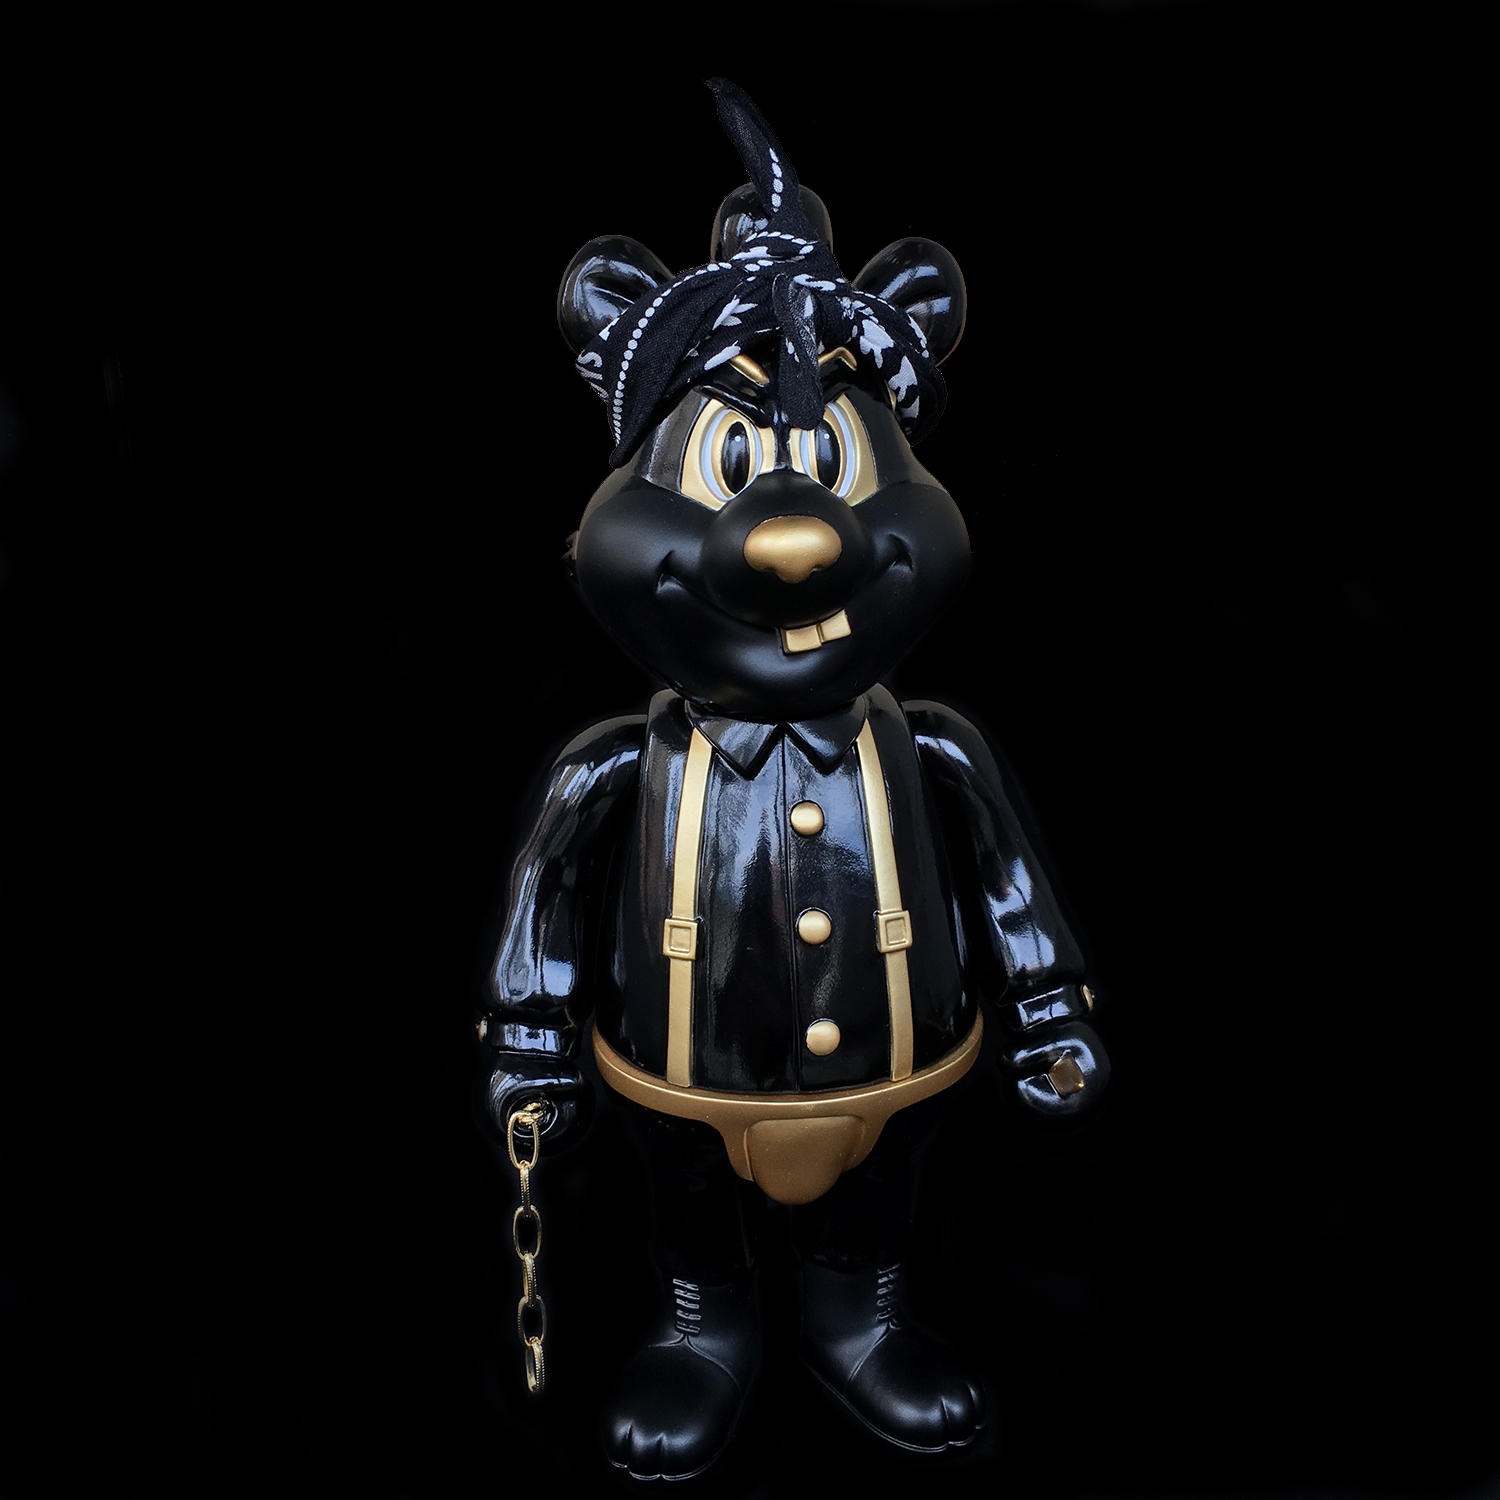 Frank Kozik x BlackBook Toy:A Clockwork Carrot Dim 11インチフィギュア Thug Life Edition